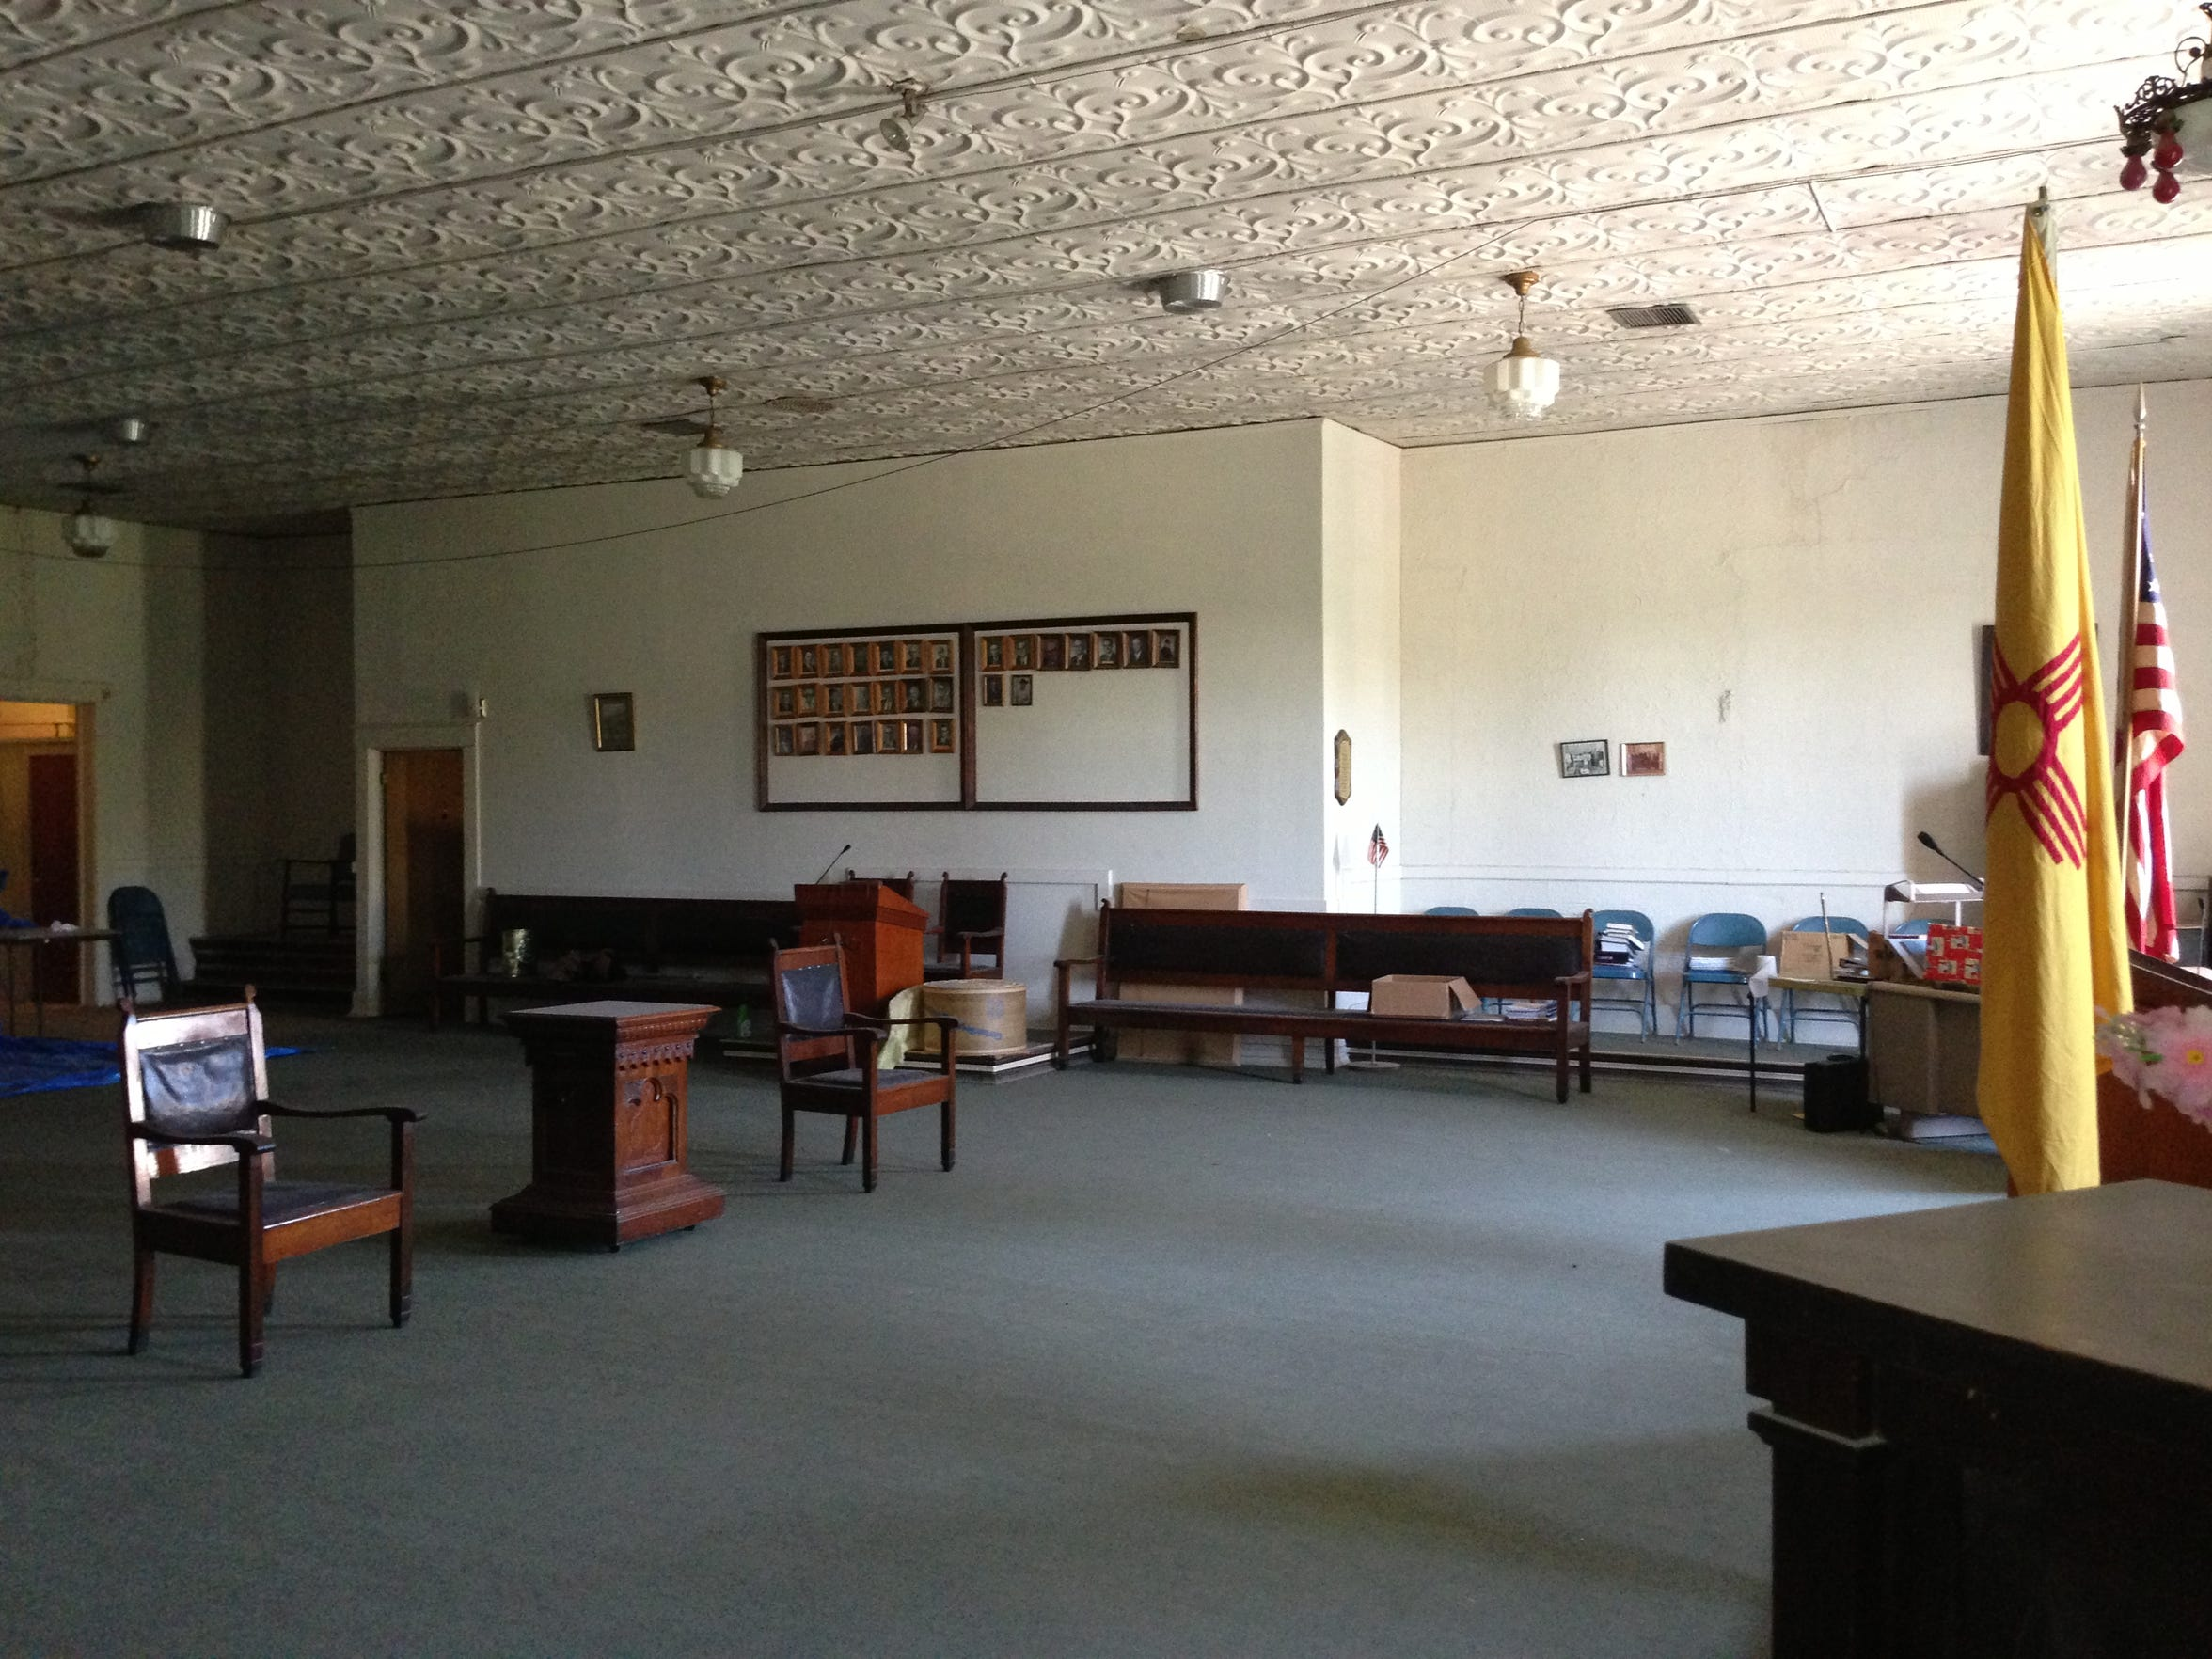 The main meeting room in the former Odd Fellows lodge